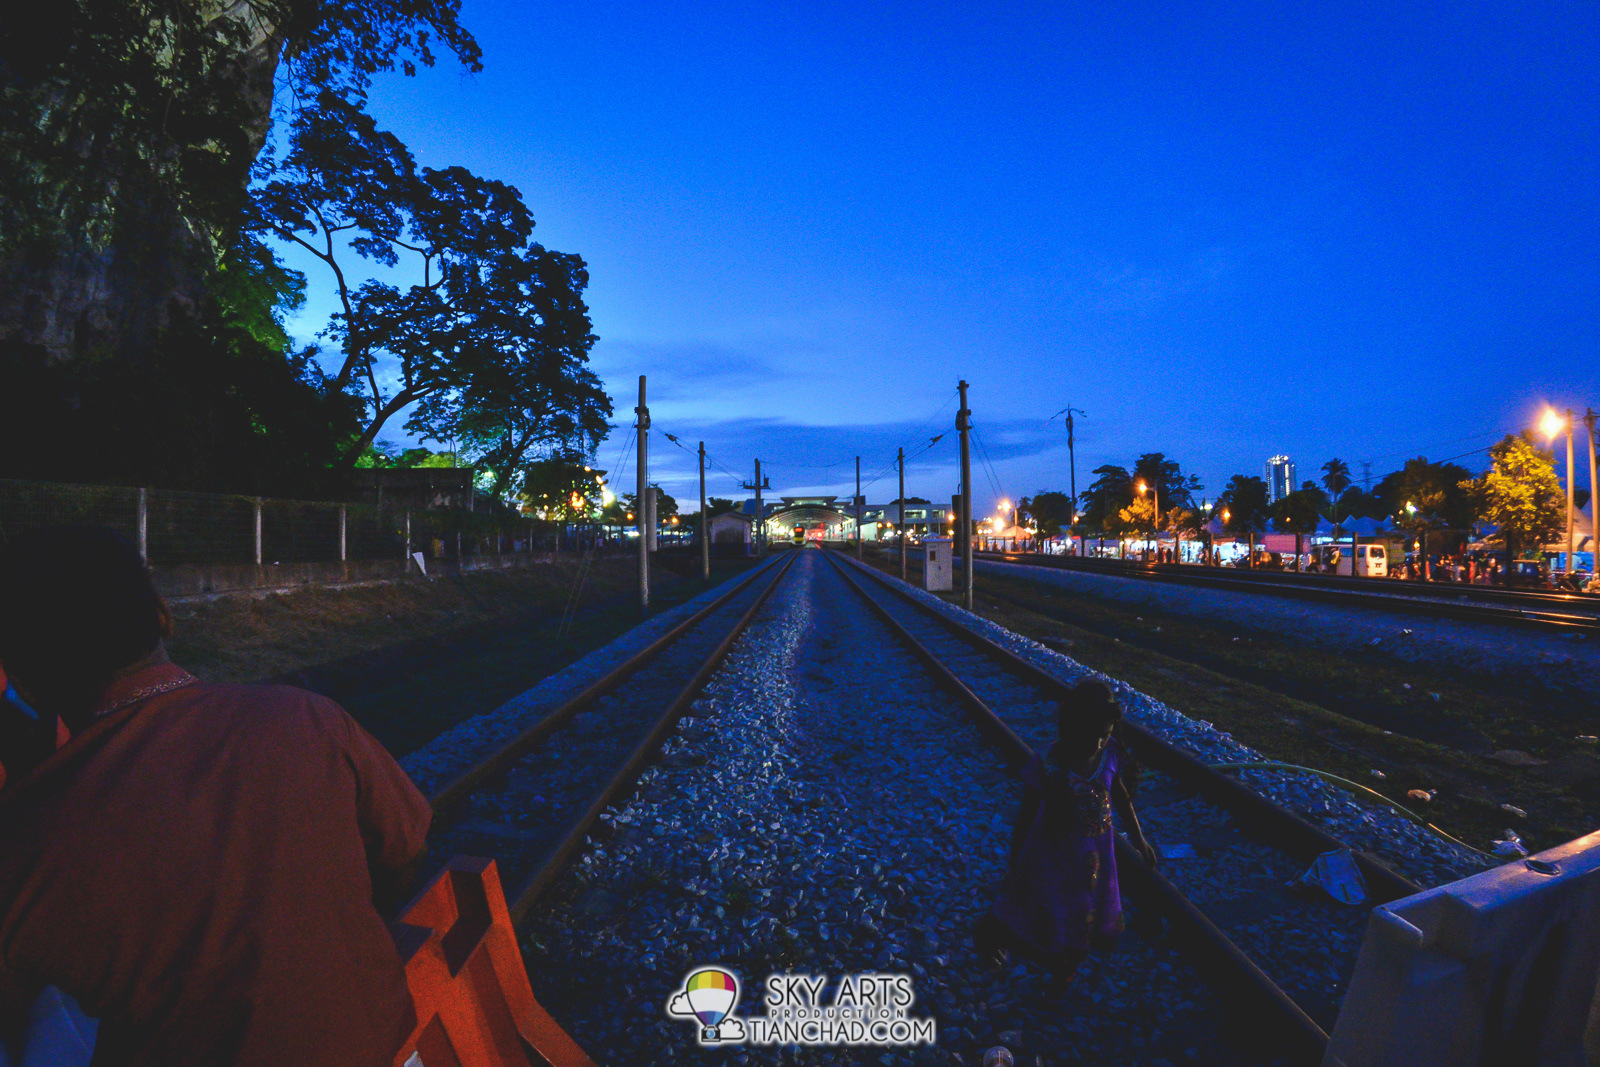 Crossing the railway to washing area - Thaipusam 2015